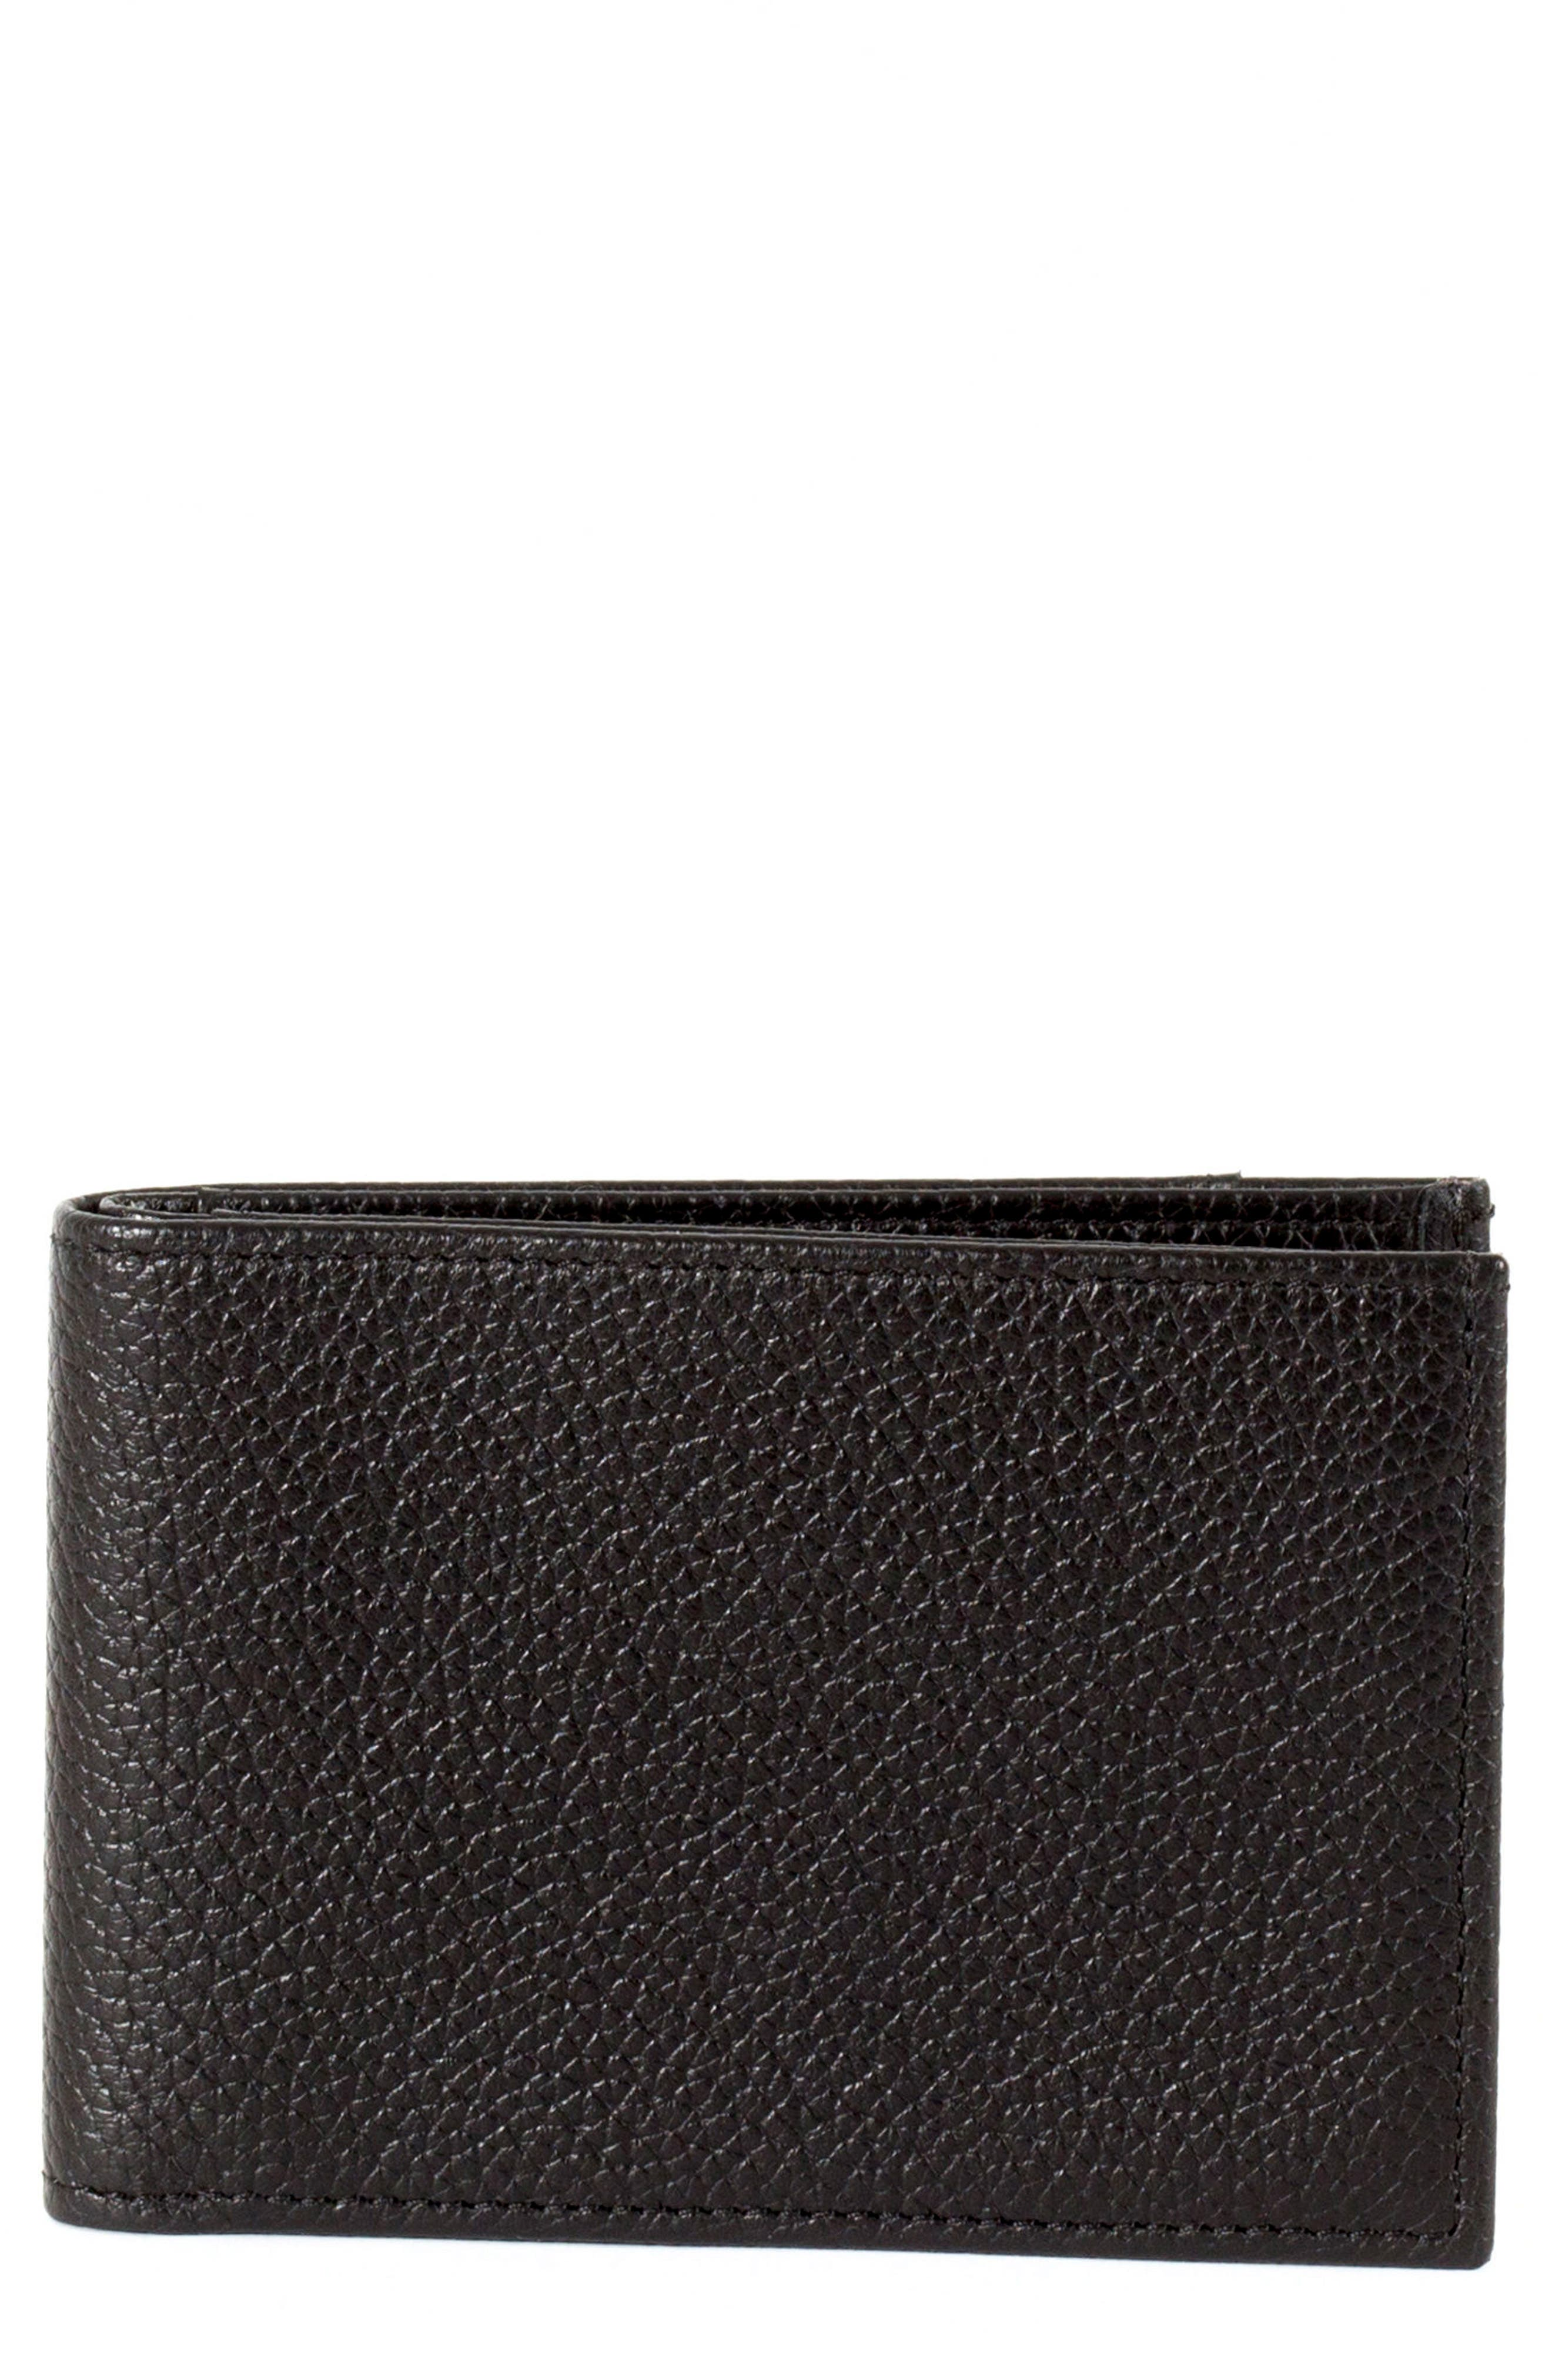 Garth Leather Bifold Wallet,                             Main thumbnail 1, color,                             001